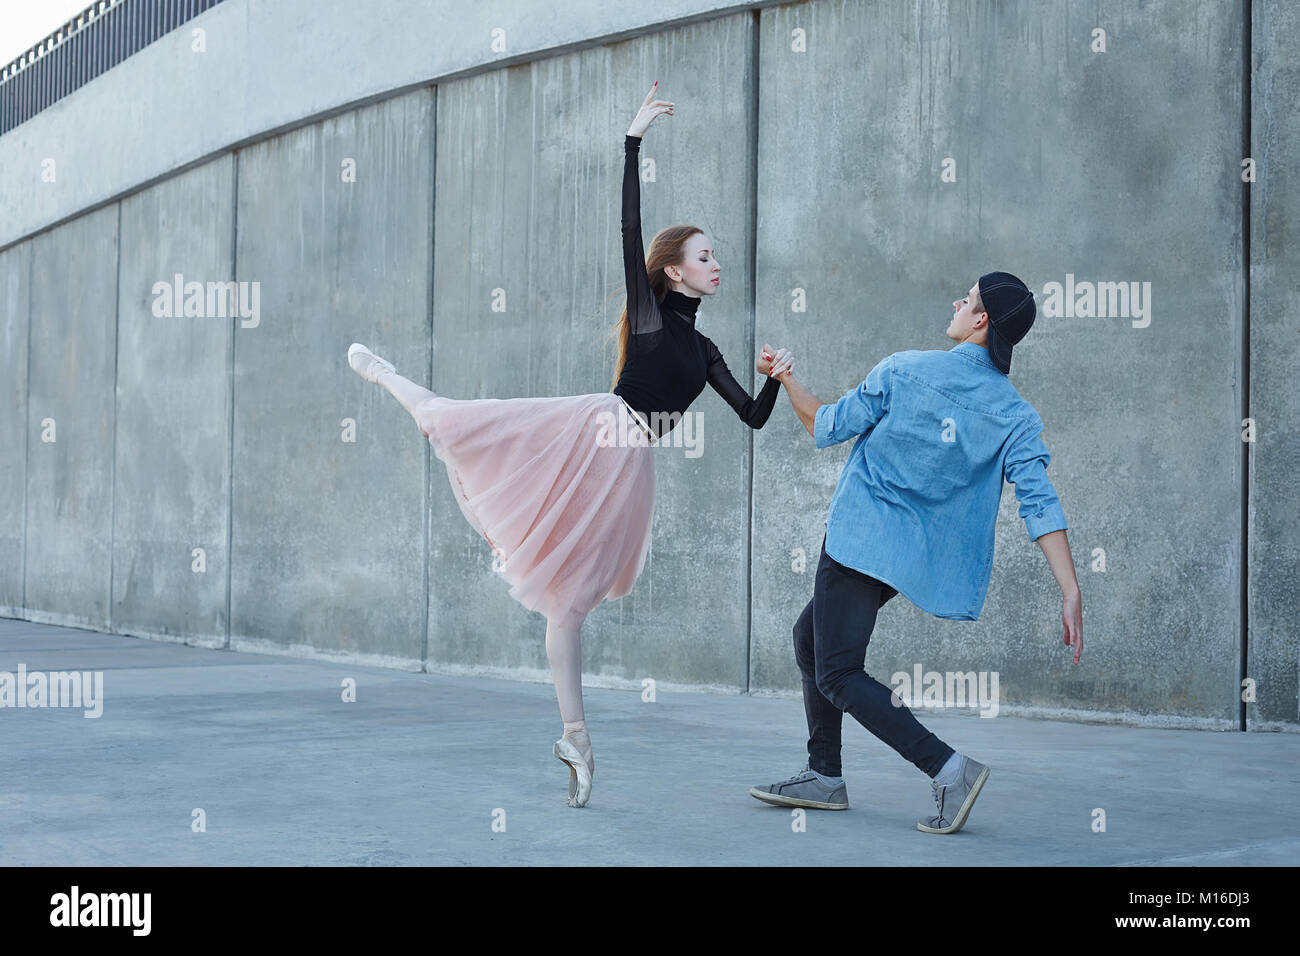 Slender ballerina dances with a modern dancer. Date of lovers. Performance in the streets of the city. Stock Photo